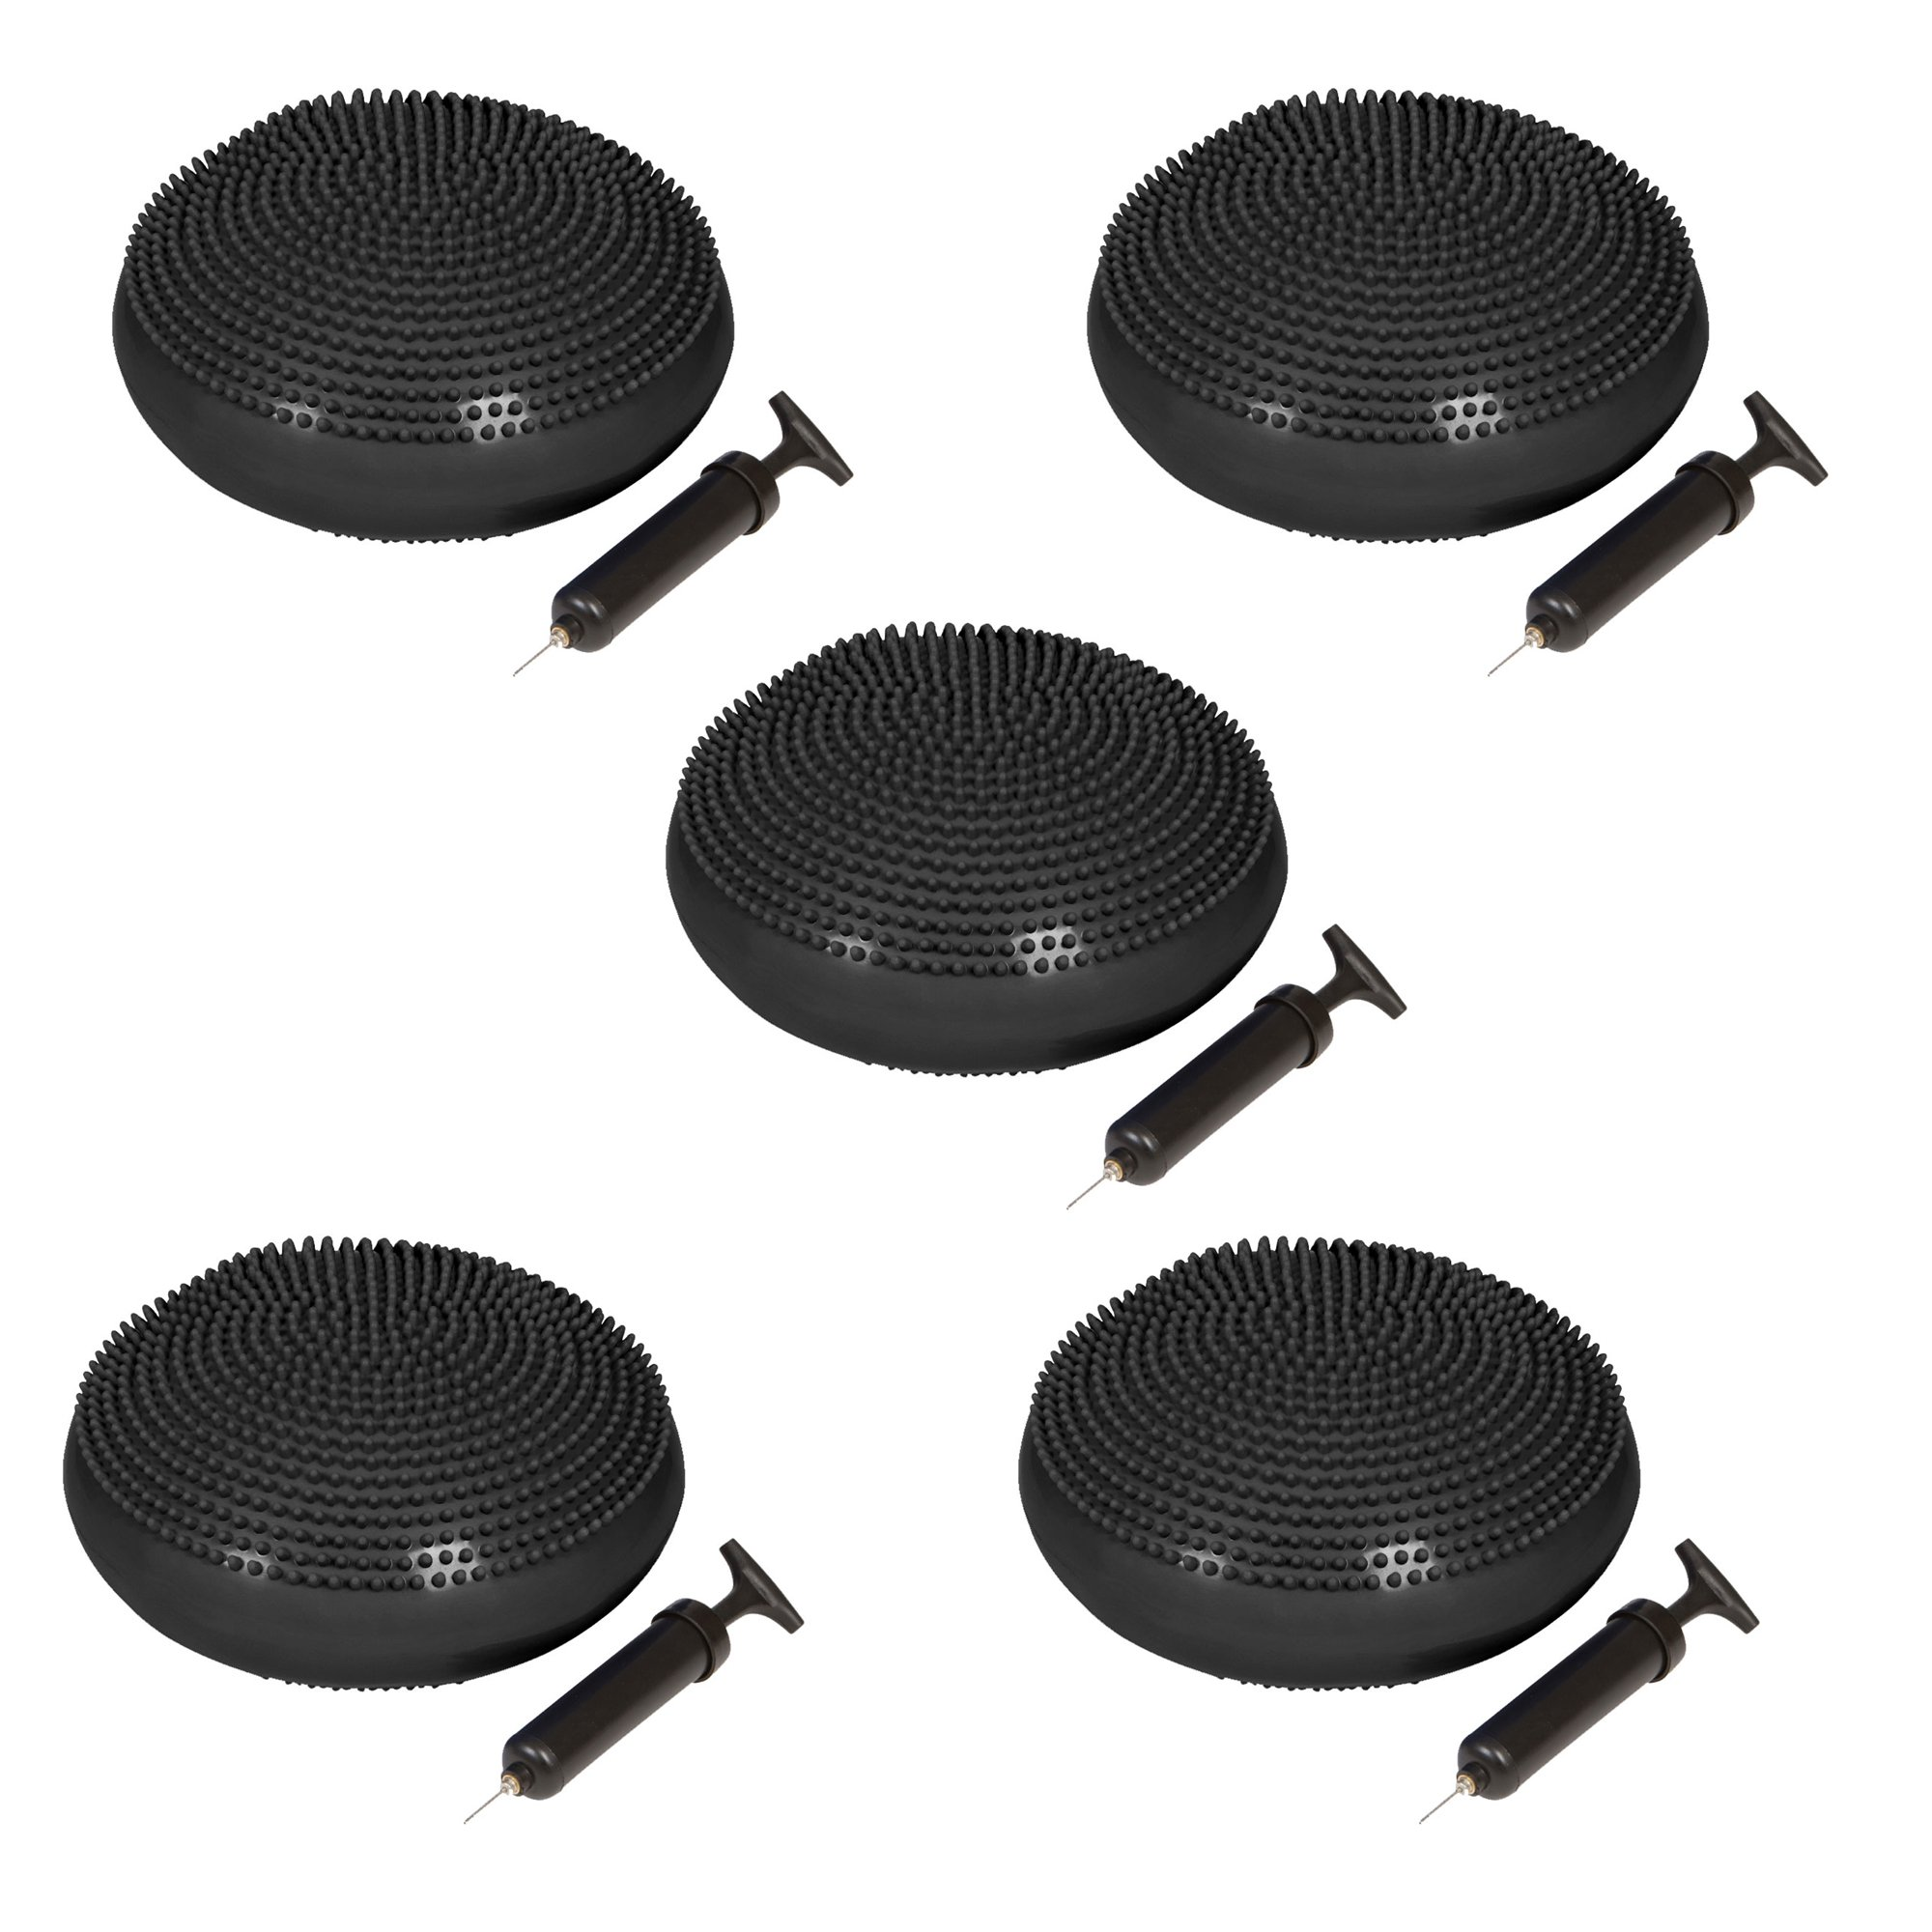 Trademark Innovations PVC Fitness and Balance Disc - 13-Inch Diameter - Set of 5 - (Black)